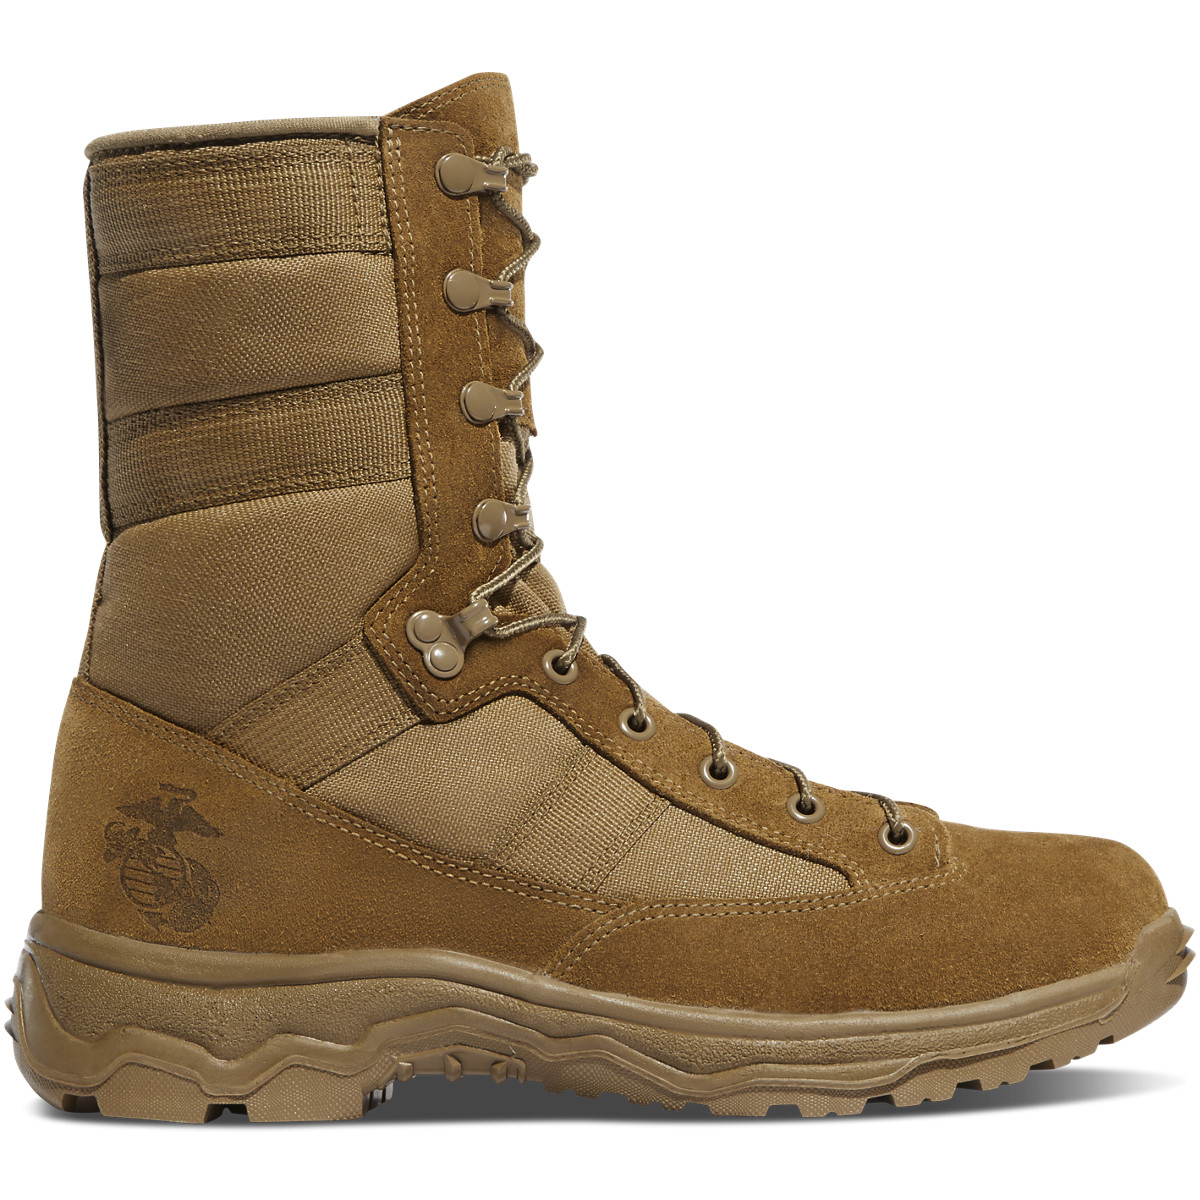 Danner Reckoning 8 Quot Coyote Usmc Hot Ega